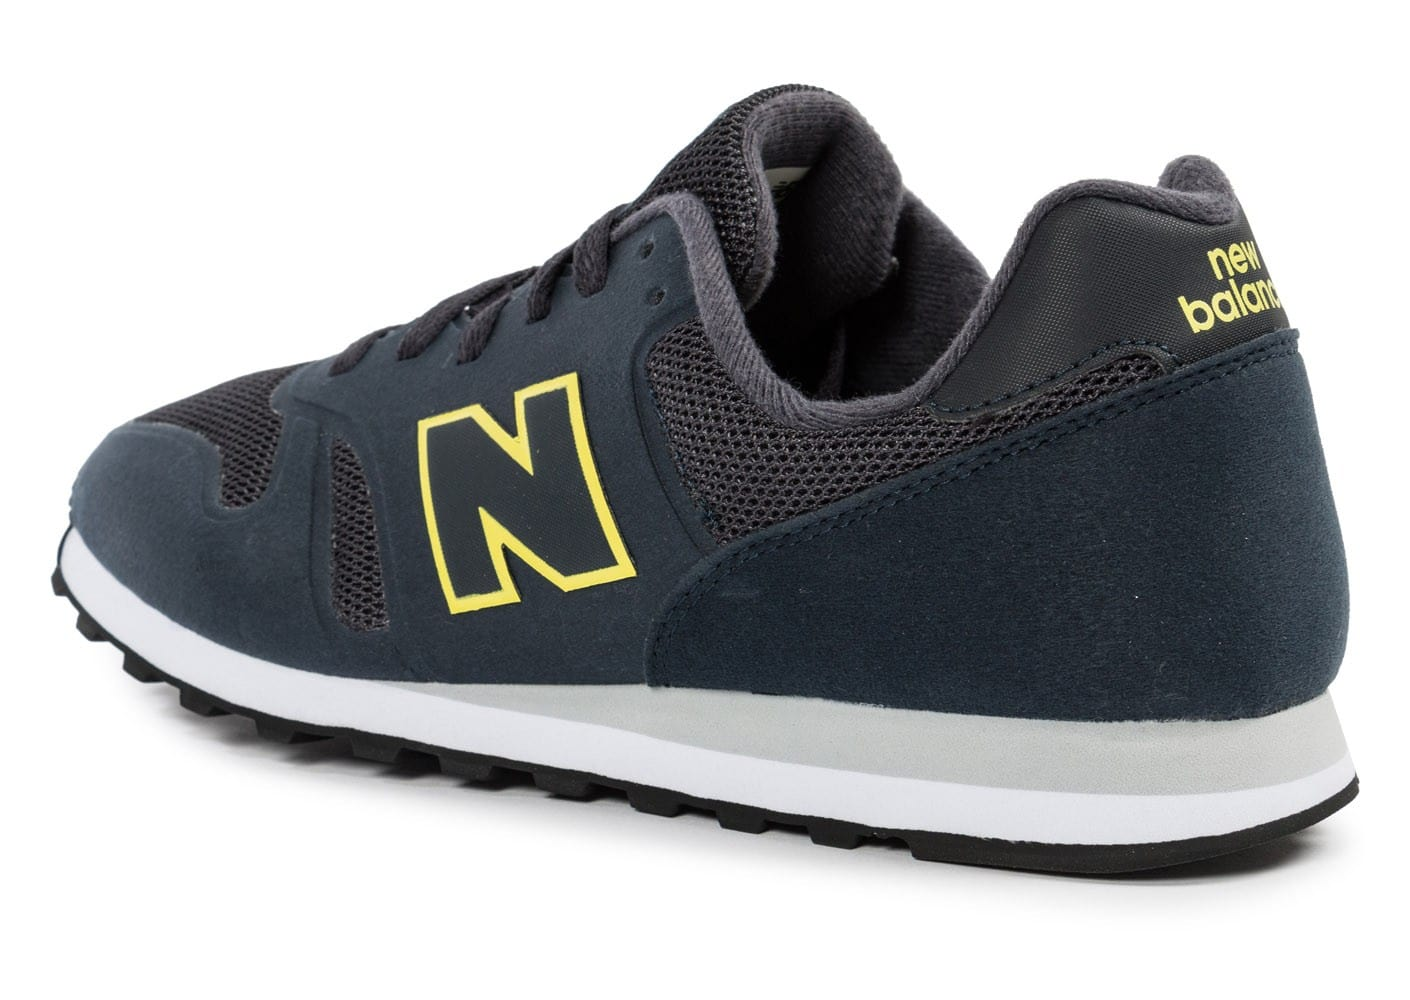 check out 8bf41 e2066 0538-chaussures-new-balance-md373-ny-bleu-marine-vue-arriere 1.jpg